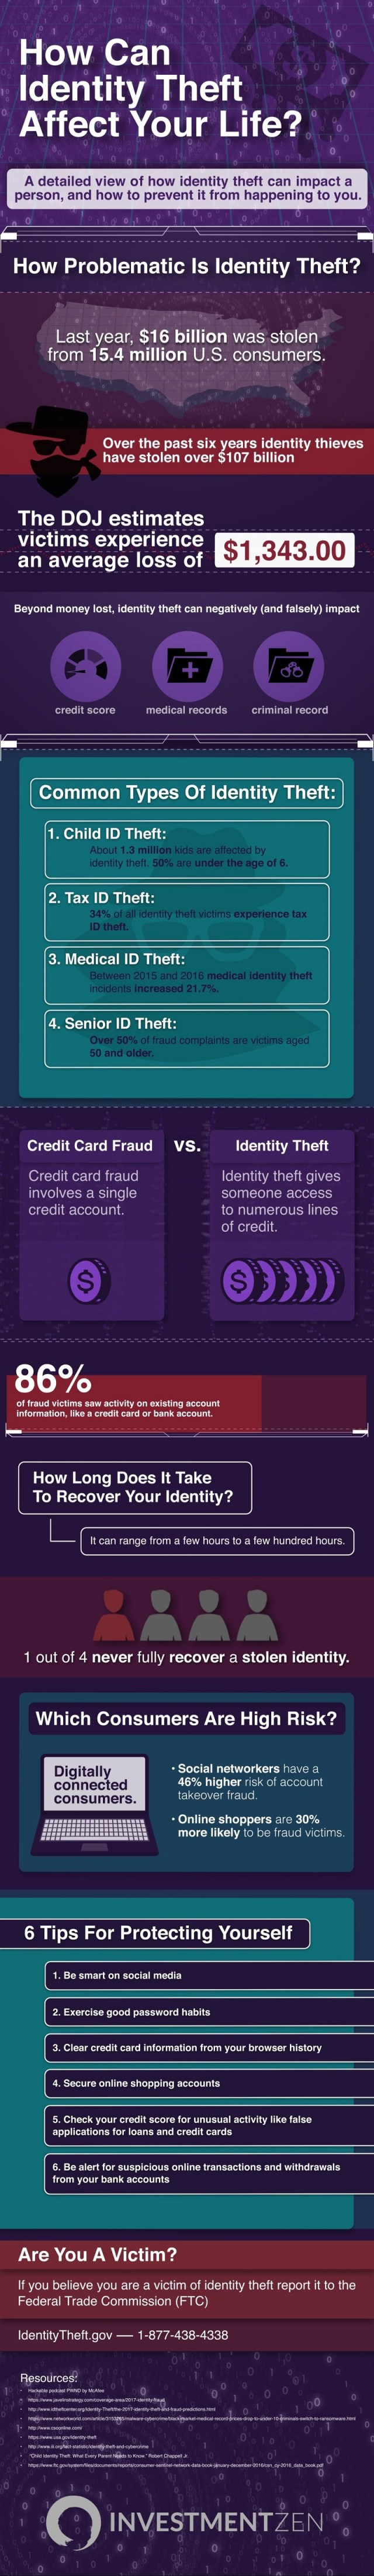 How Can Identity Theft Affect Your Life?